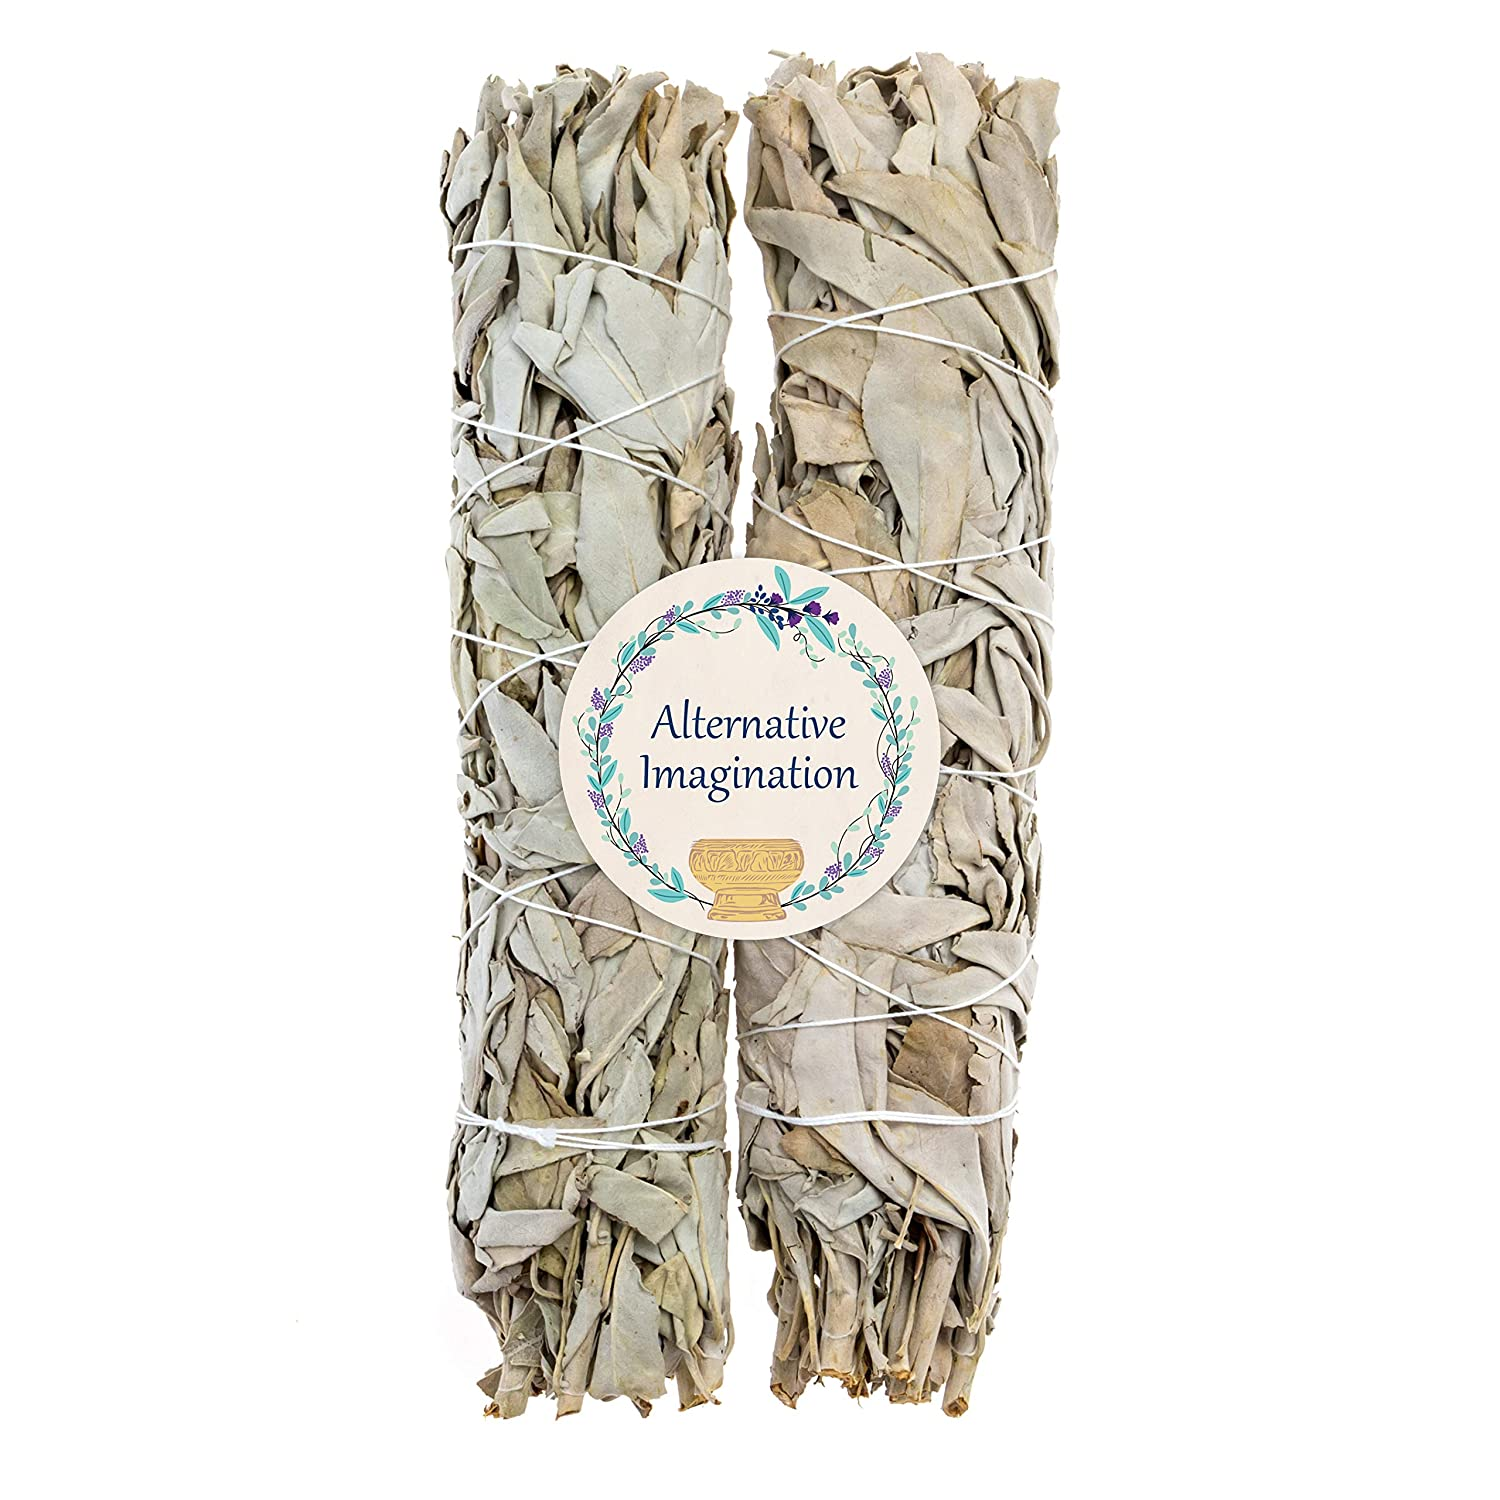 8.5+ Large California White Sage, Each Stick Approximately 8.5 Inches Long and 1.5 Inches Wide for Smudging Rituals, Energy Clearing, Protection, Incense, Meditation, Made in USA (1 - Extra Large) Alternative Imagination